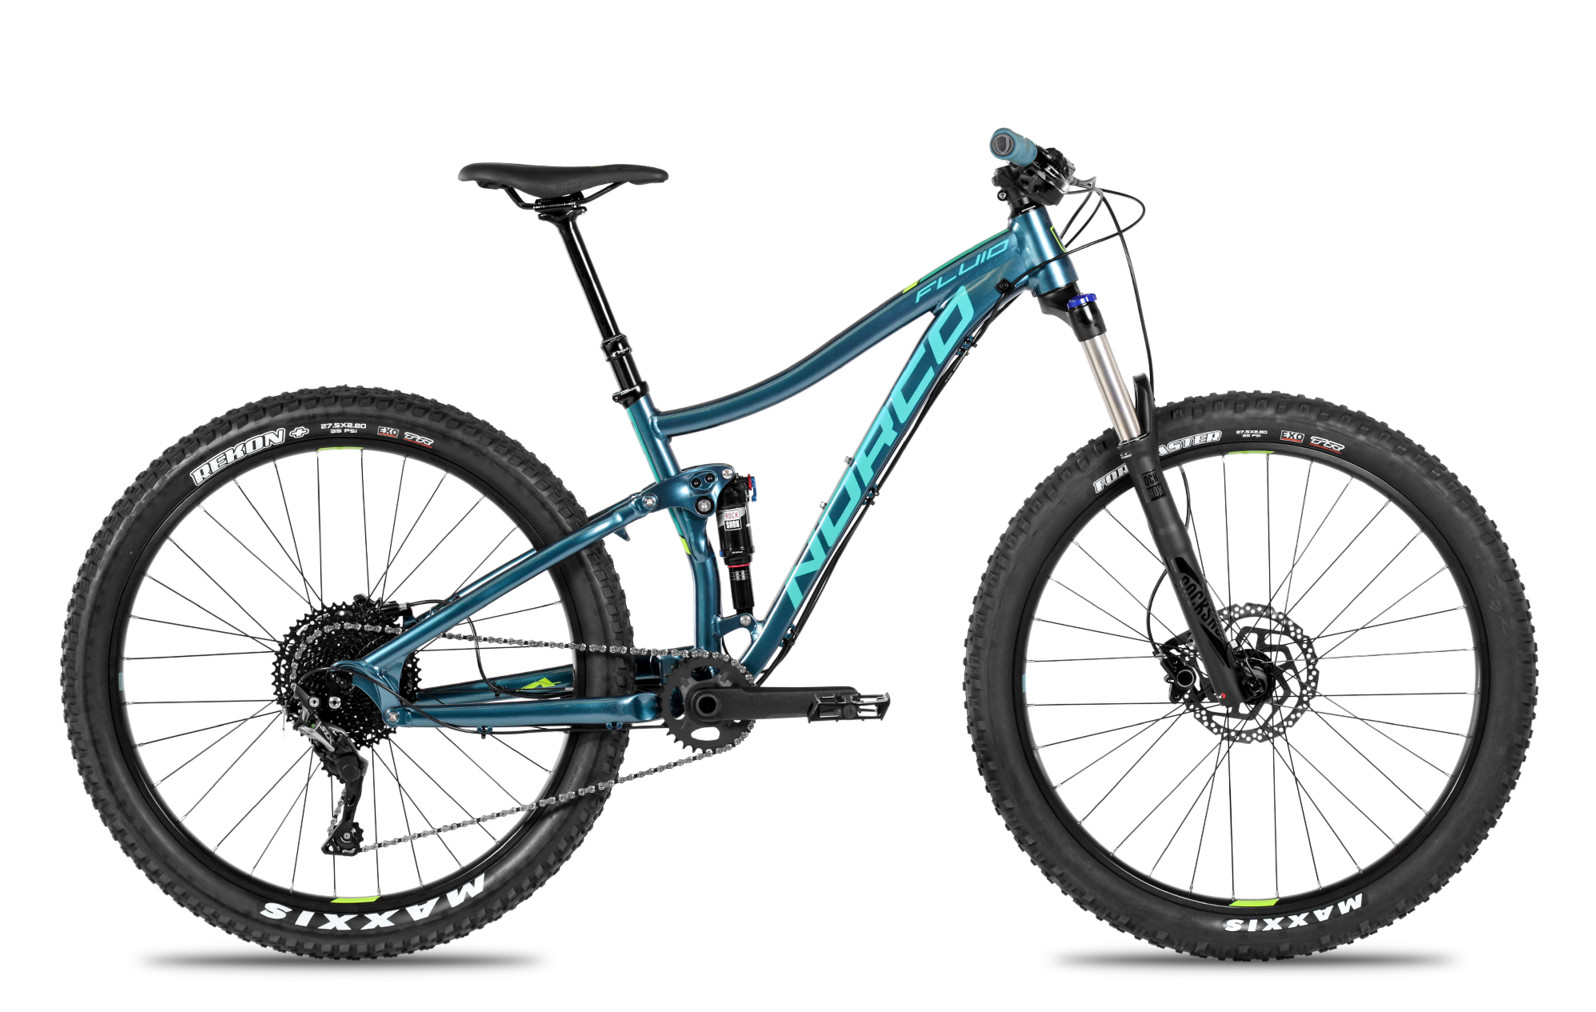 519808fa994 2018 Norco Fluid FS1+ Women's Bike - Reviews, Comparisons, Specs ...